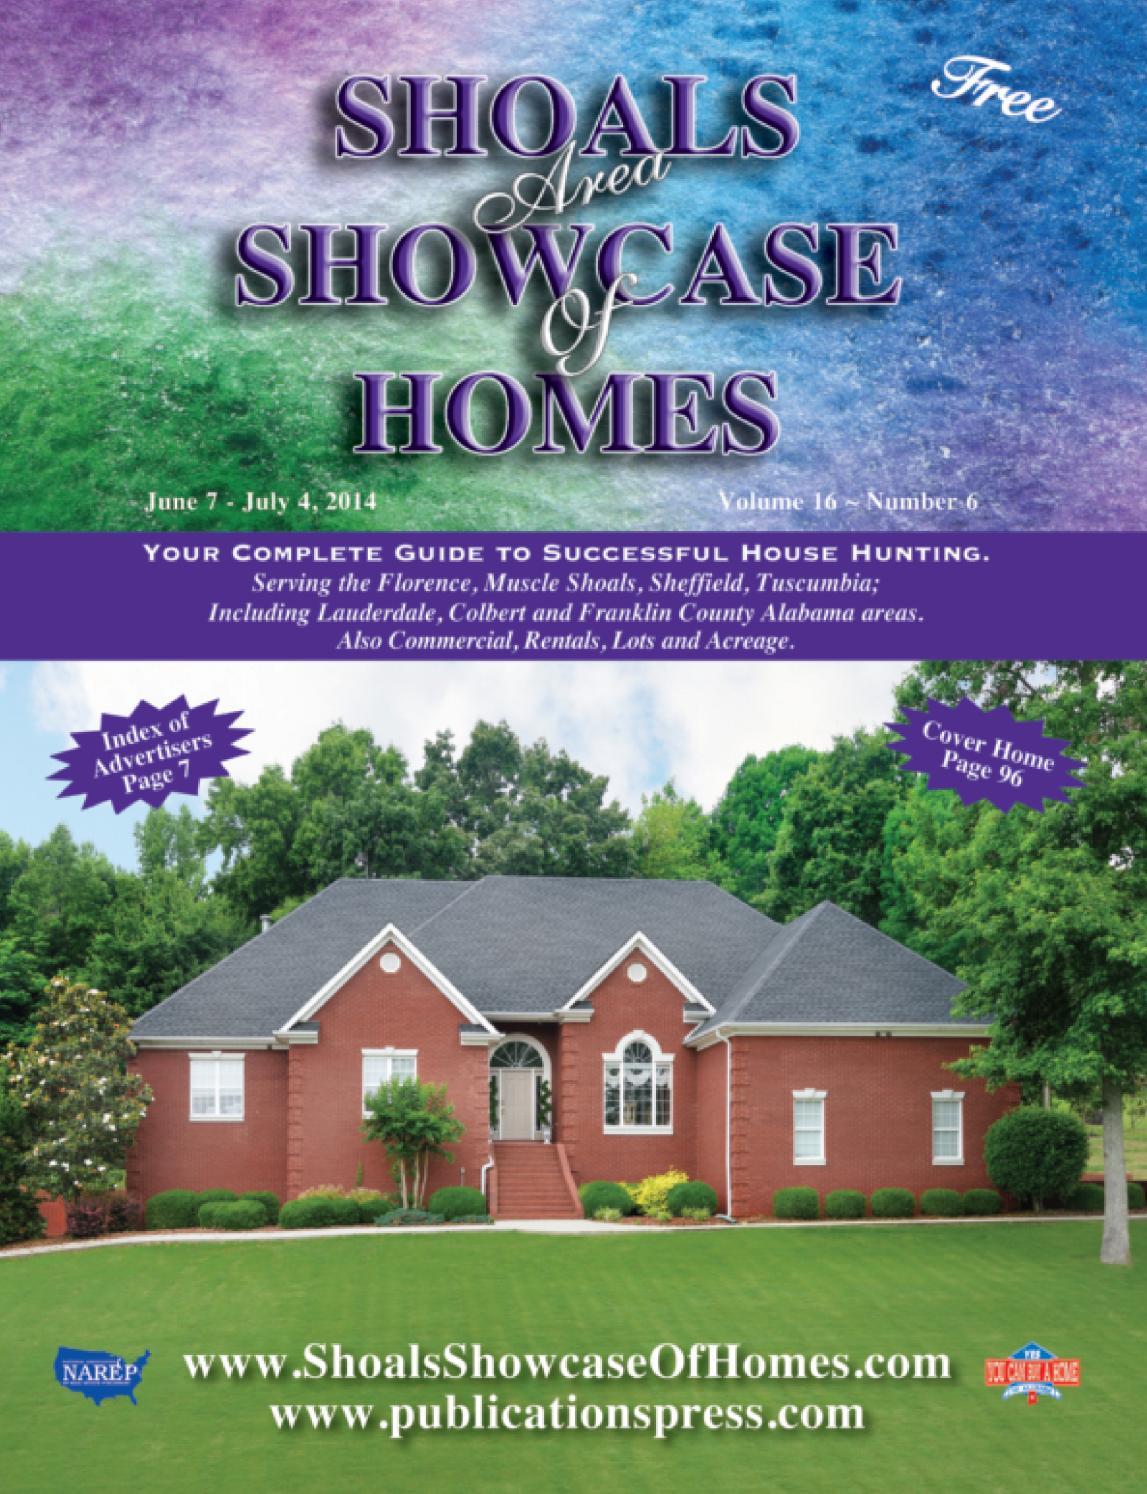 Shoals Area Showcase of Homes, Vol. 16, No. 6 by Publications Press - issuu